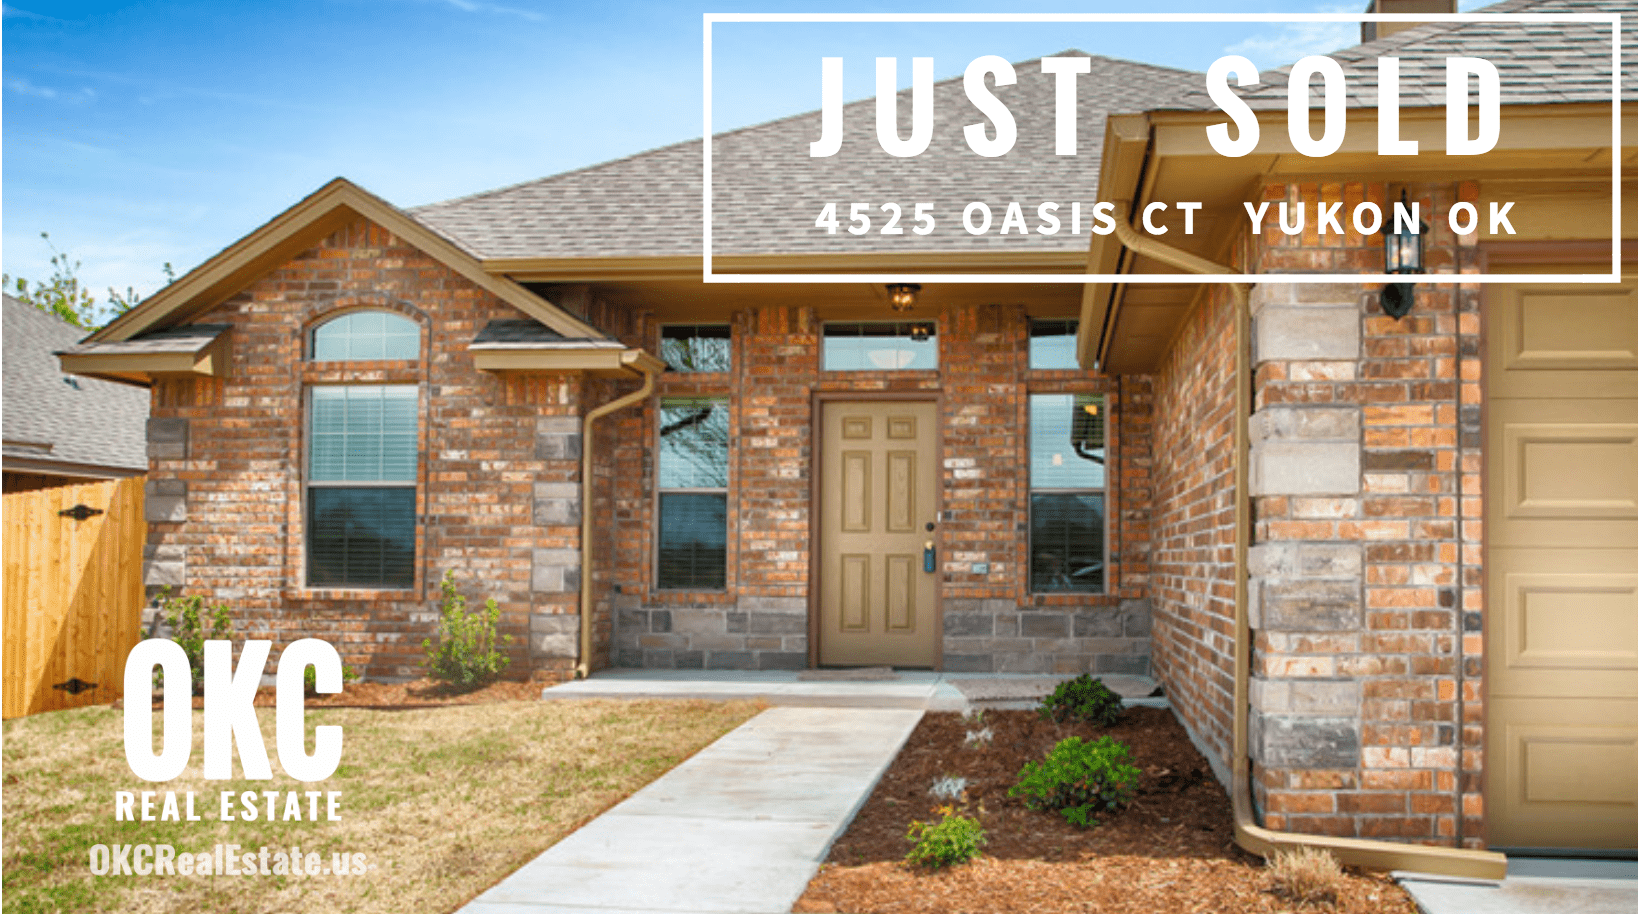 JUST SOLD-4525 OASIS COURT NEW HOME IN YUKON